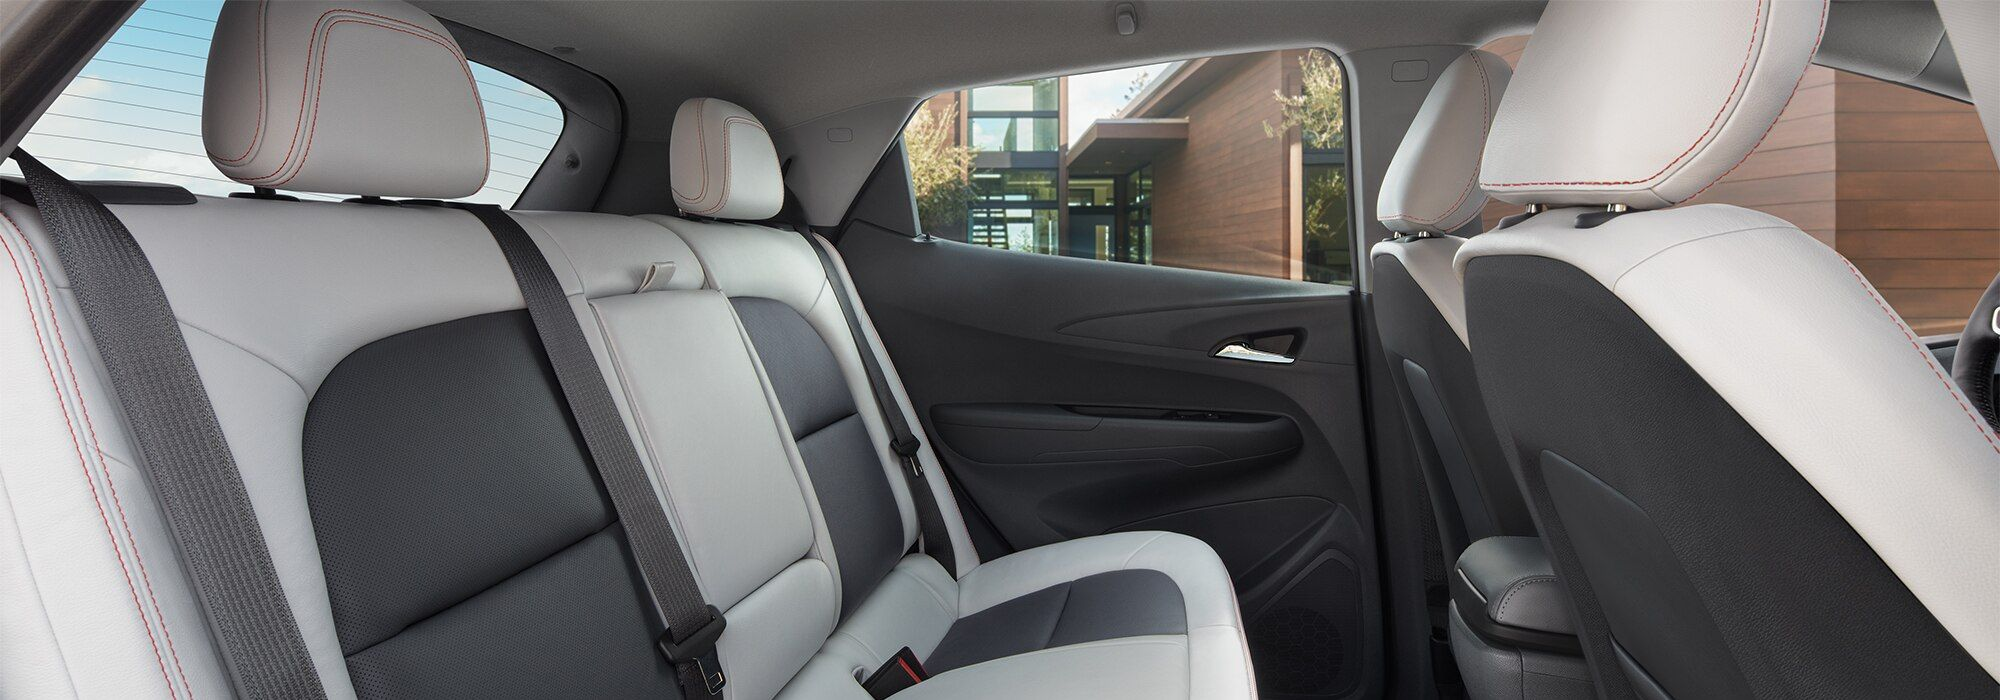 2019 Bolt EV Rear Seating